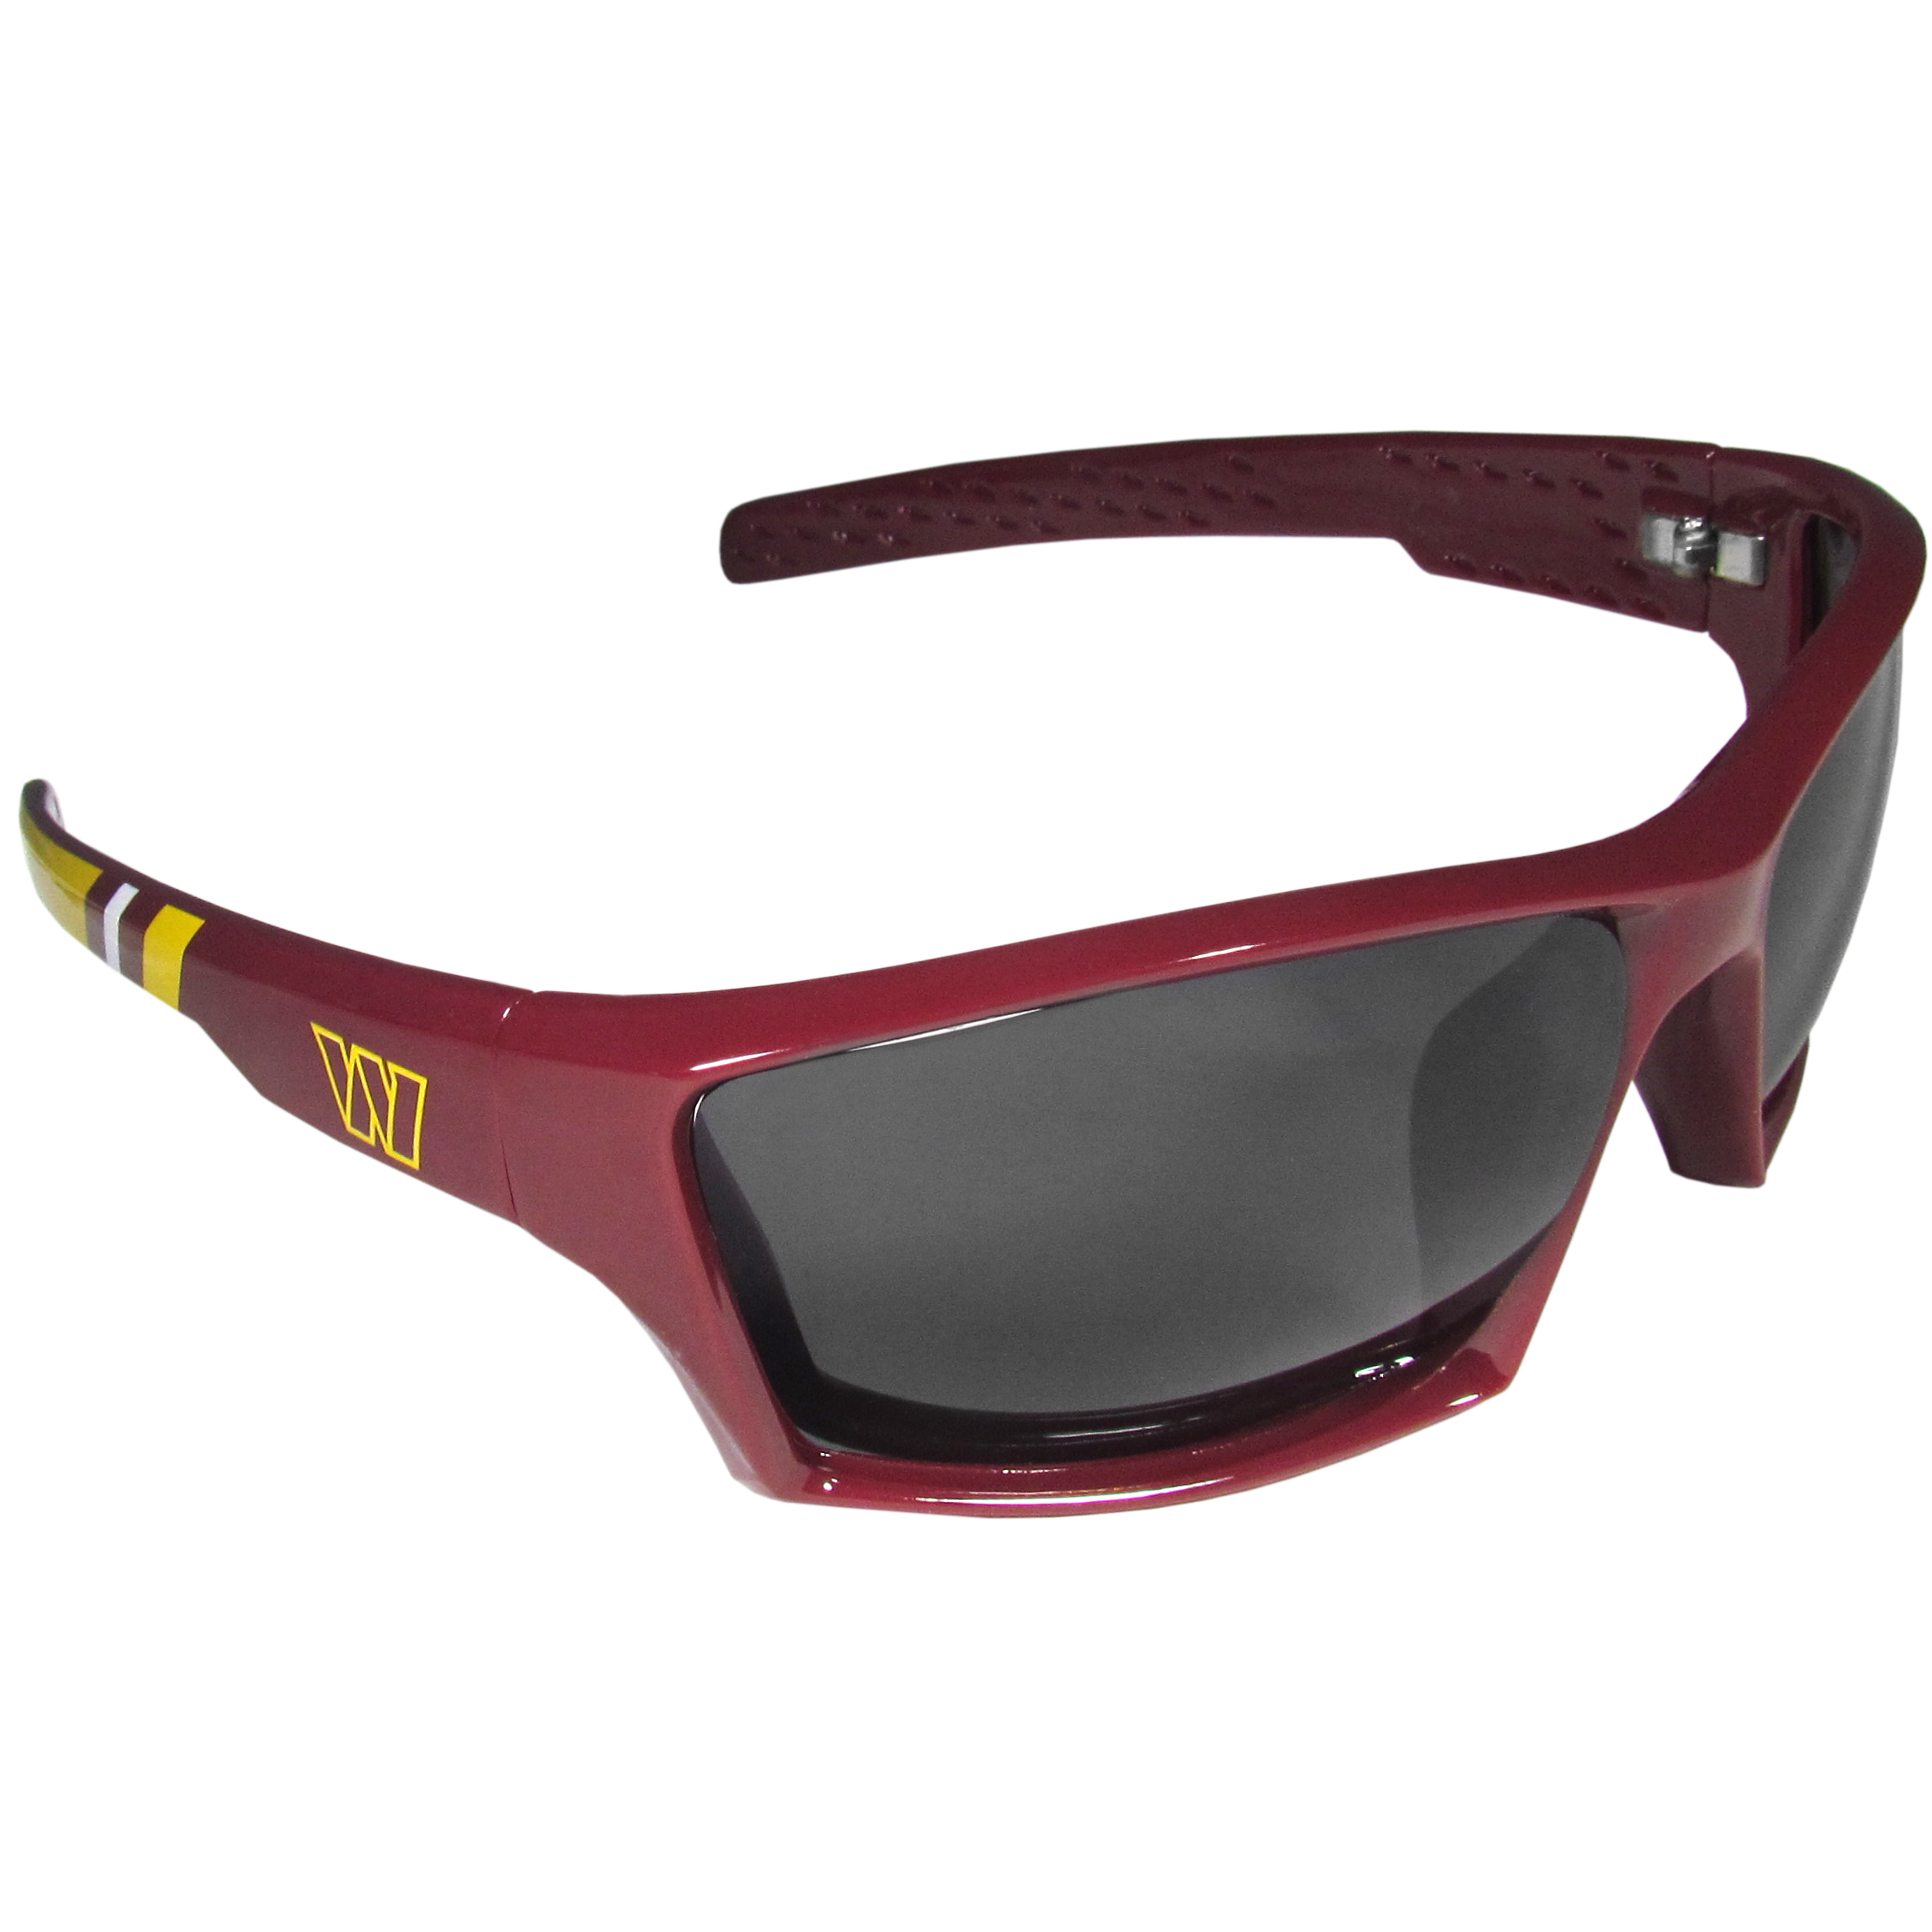 Washington Redskins Edge Wrap Sunglasses - Be an icon of edgy style while you're in the stadium cheering your Washington Redskins to victory with our polarized wrap sunglasses that feature 100% UVA/UVB rating for maximum UV protection. The light-weight frames are built to last with flex hinges for comfort and durability which make them perfect for driving or just lounging by the pool. The colorful rubber grips on the arms of these fashionable sunglasses make them perfect for someone with an active lifestyle. Whether you are hiking, fishing, boating, running on the beach, golfing or playing your favorite sport these designer frames will set you apart. Our edge wrap sunglasses are true quality eyewear at an affordable price. The wrap style frames come with team colored stripes and team logos so you can show off your die-hard team pride while protecting your eyes from those bright sun rays.